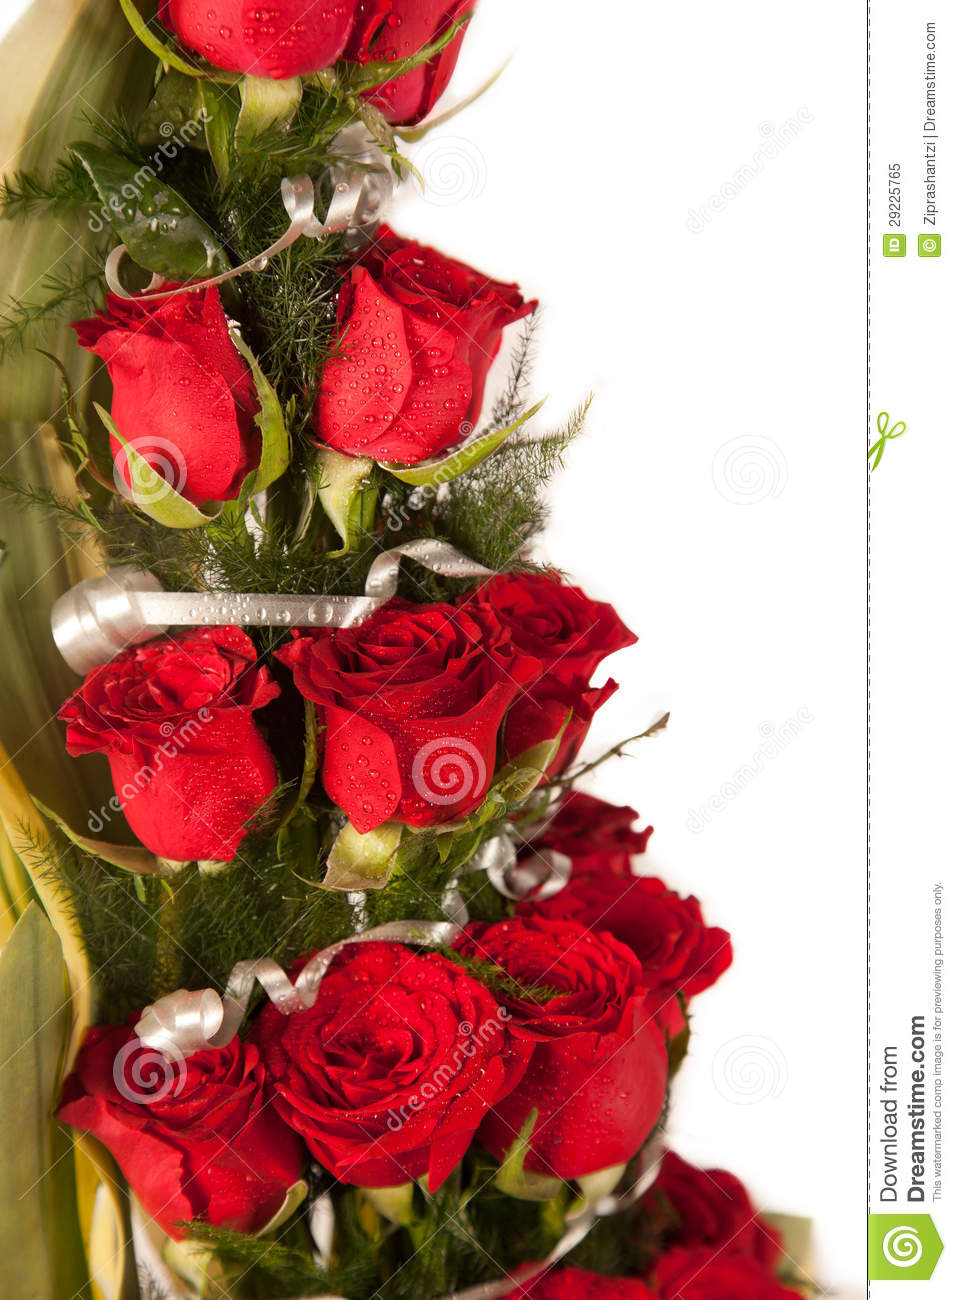 Red Rose Flowers With Water Drops Stock Image Image Of Elegance